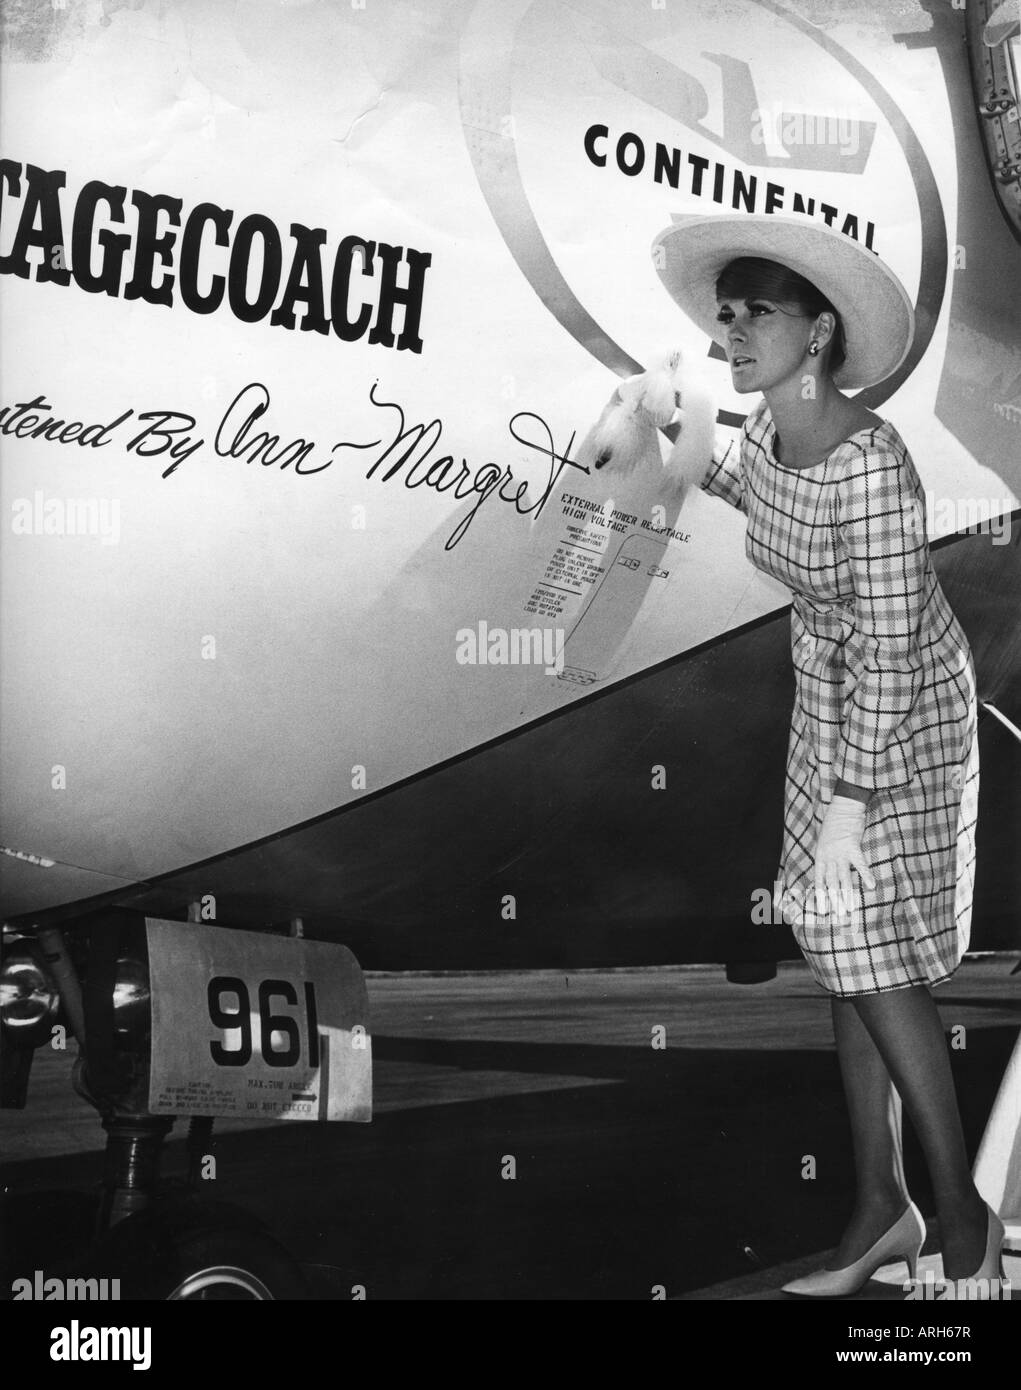 Ann-Margret, * 28.4.1941, Swedish actress, launching airplane, 'Stagecoach', 1966, 1960s, birth name Ann - Stock Image